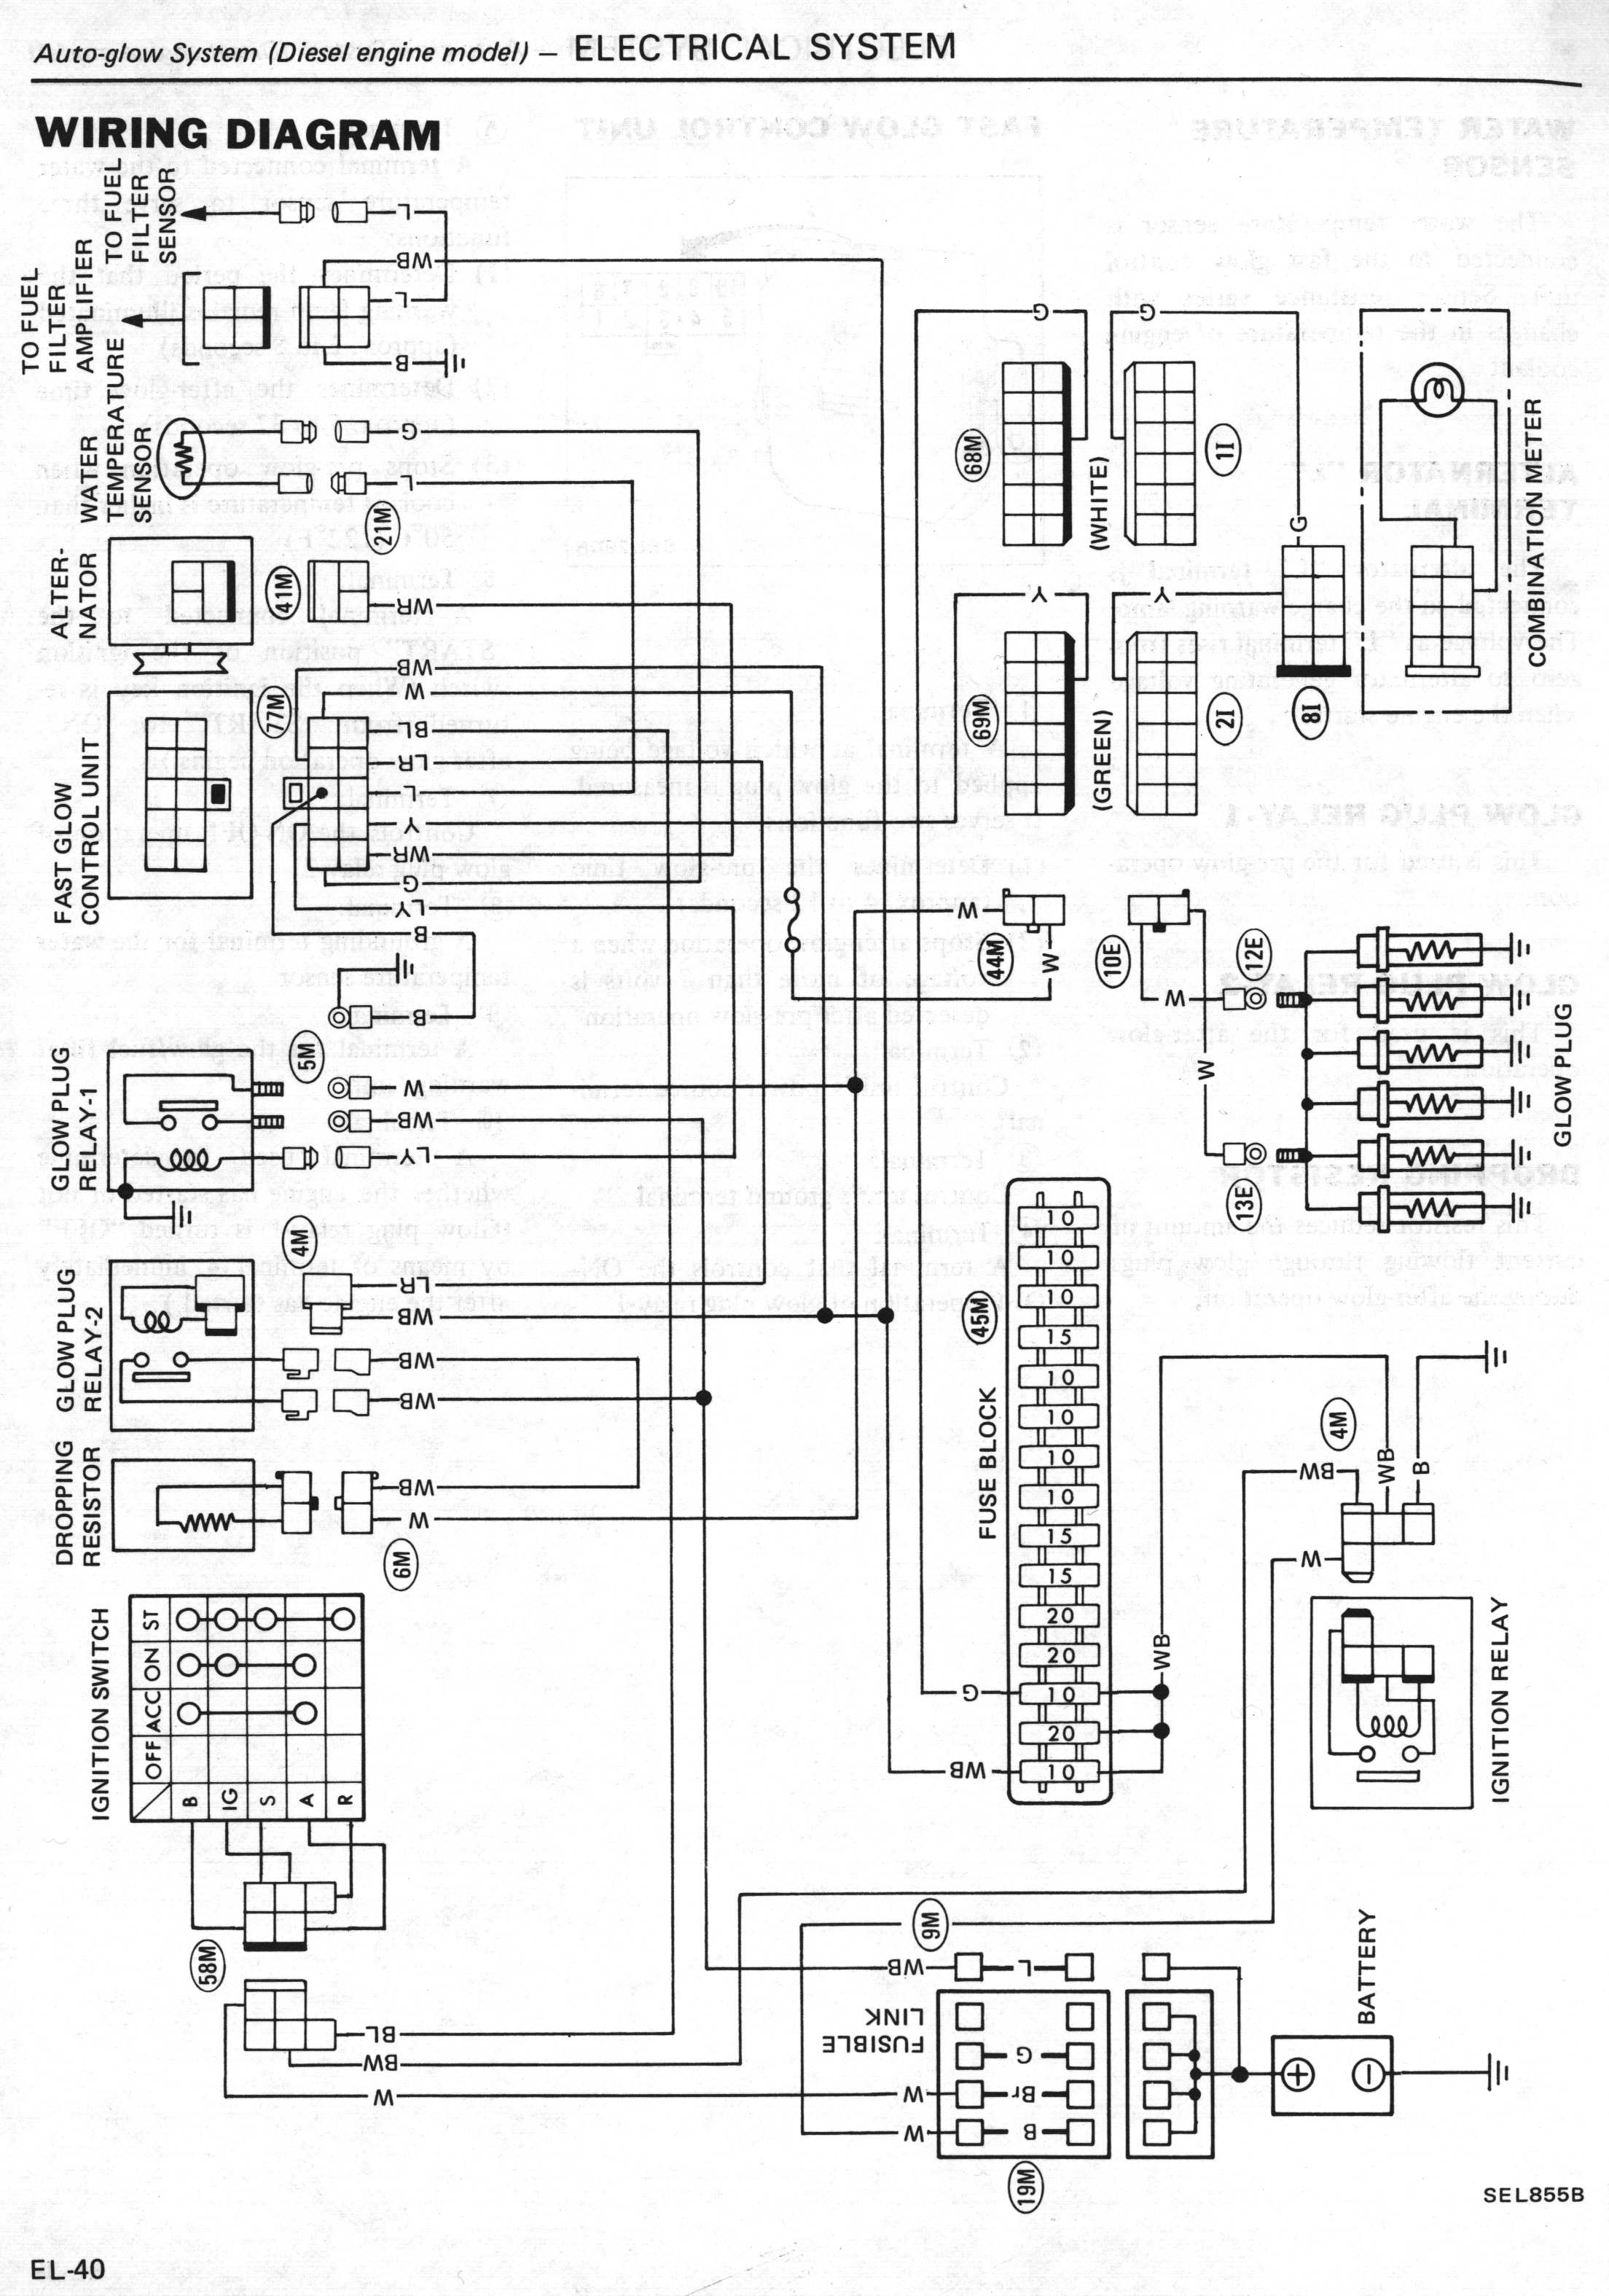 1983 Nissan Maxima Wiring Diagram Will Be A Thing 2009 Radio Nissandiesel Forums U2022 View Topic Hello Everyone New Owner Of An Rh Dyndns Org 2004 Fuse